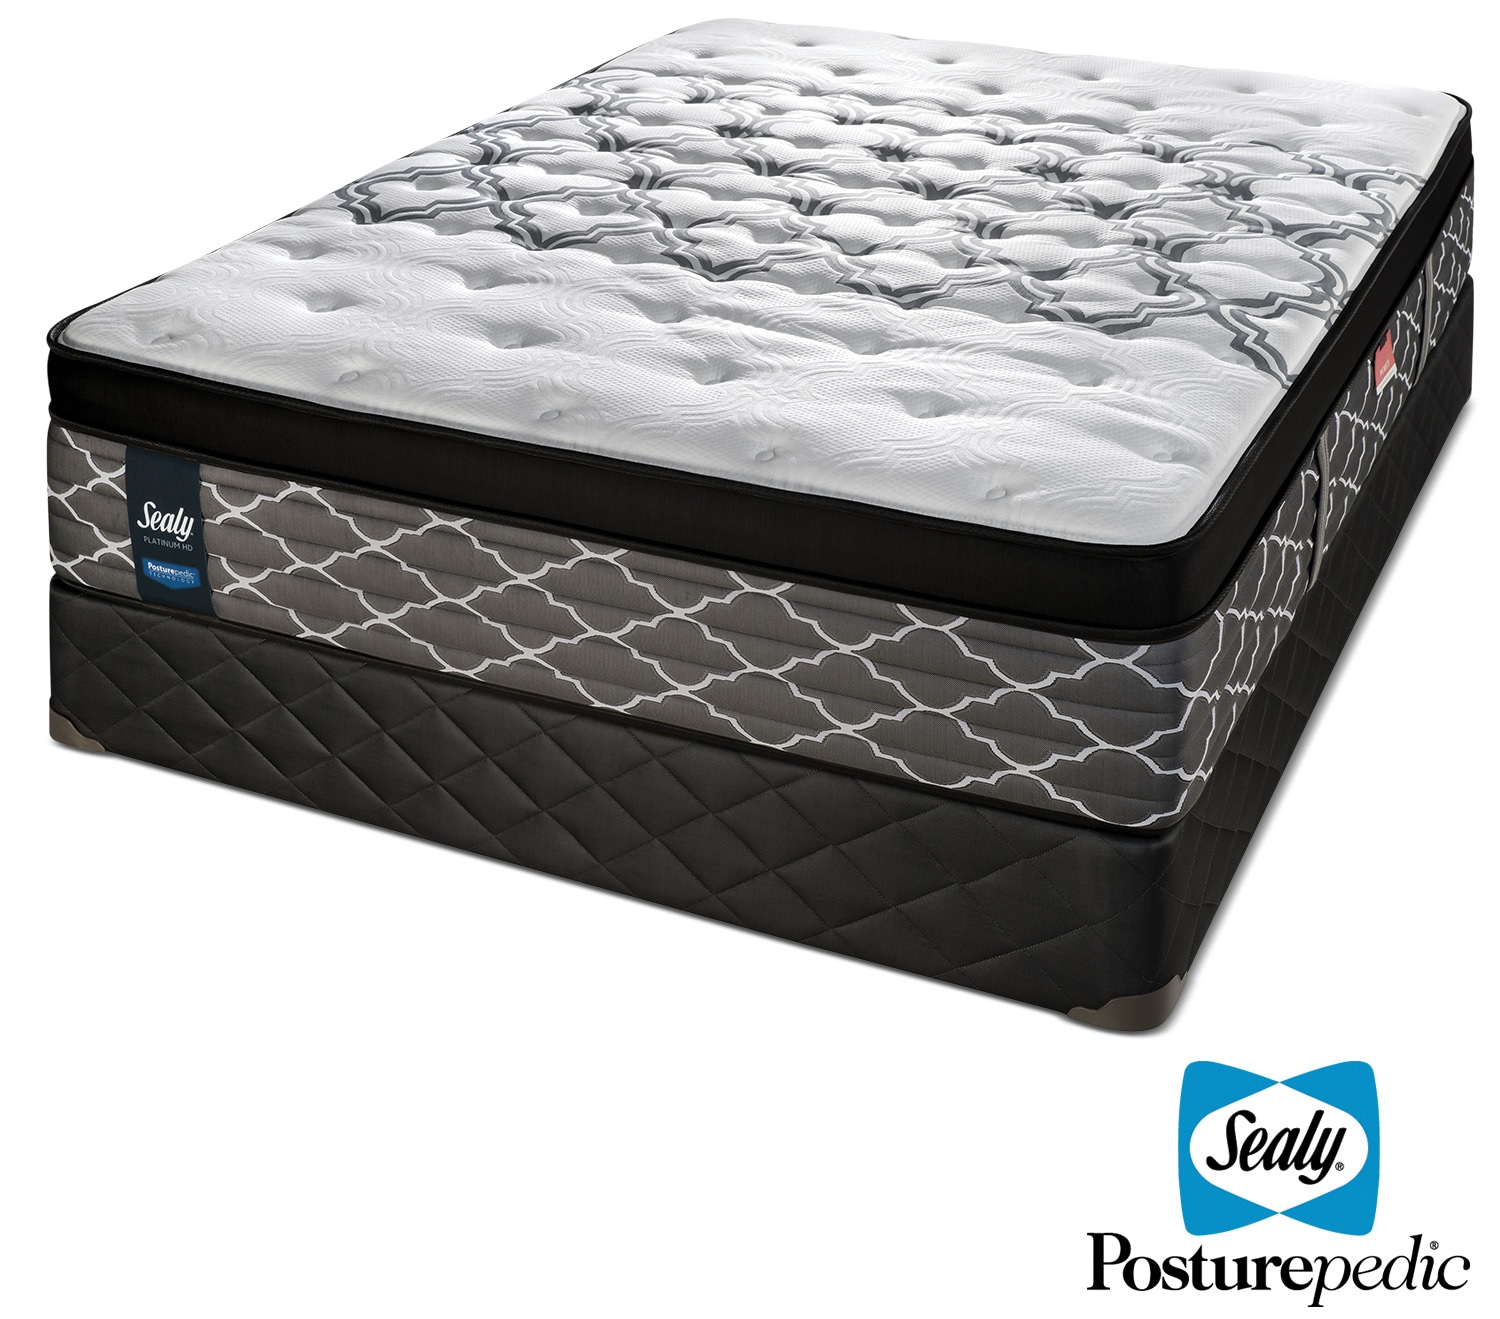 sealy dreamy night hybrid firm full mattress and boxspring. Black Bedroom Furniture Sets. Home Design Ideas